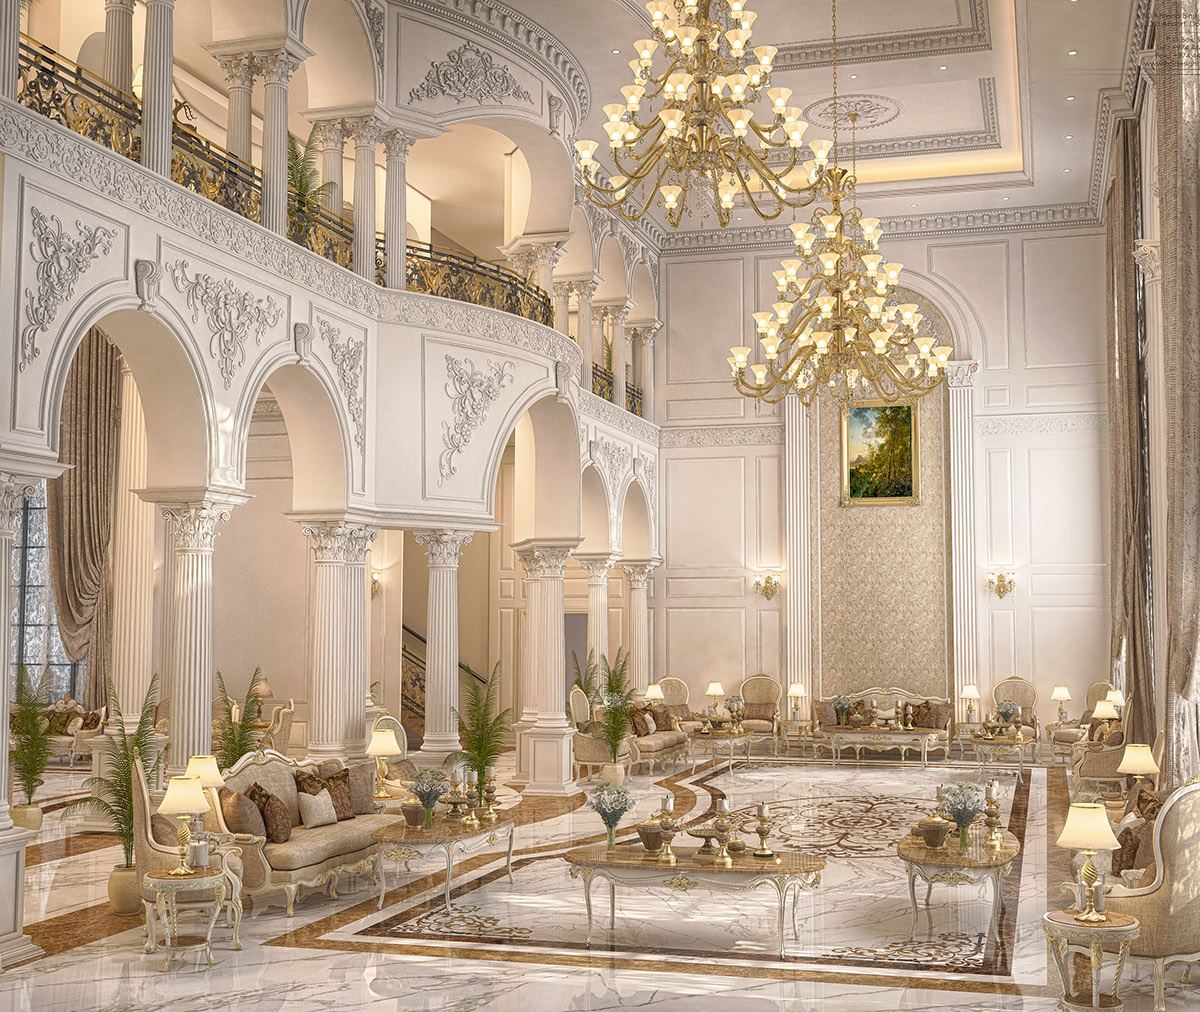 Main hall design for a private villa at doha qatar on behance for Sitting hall design